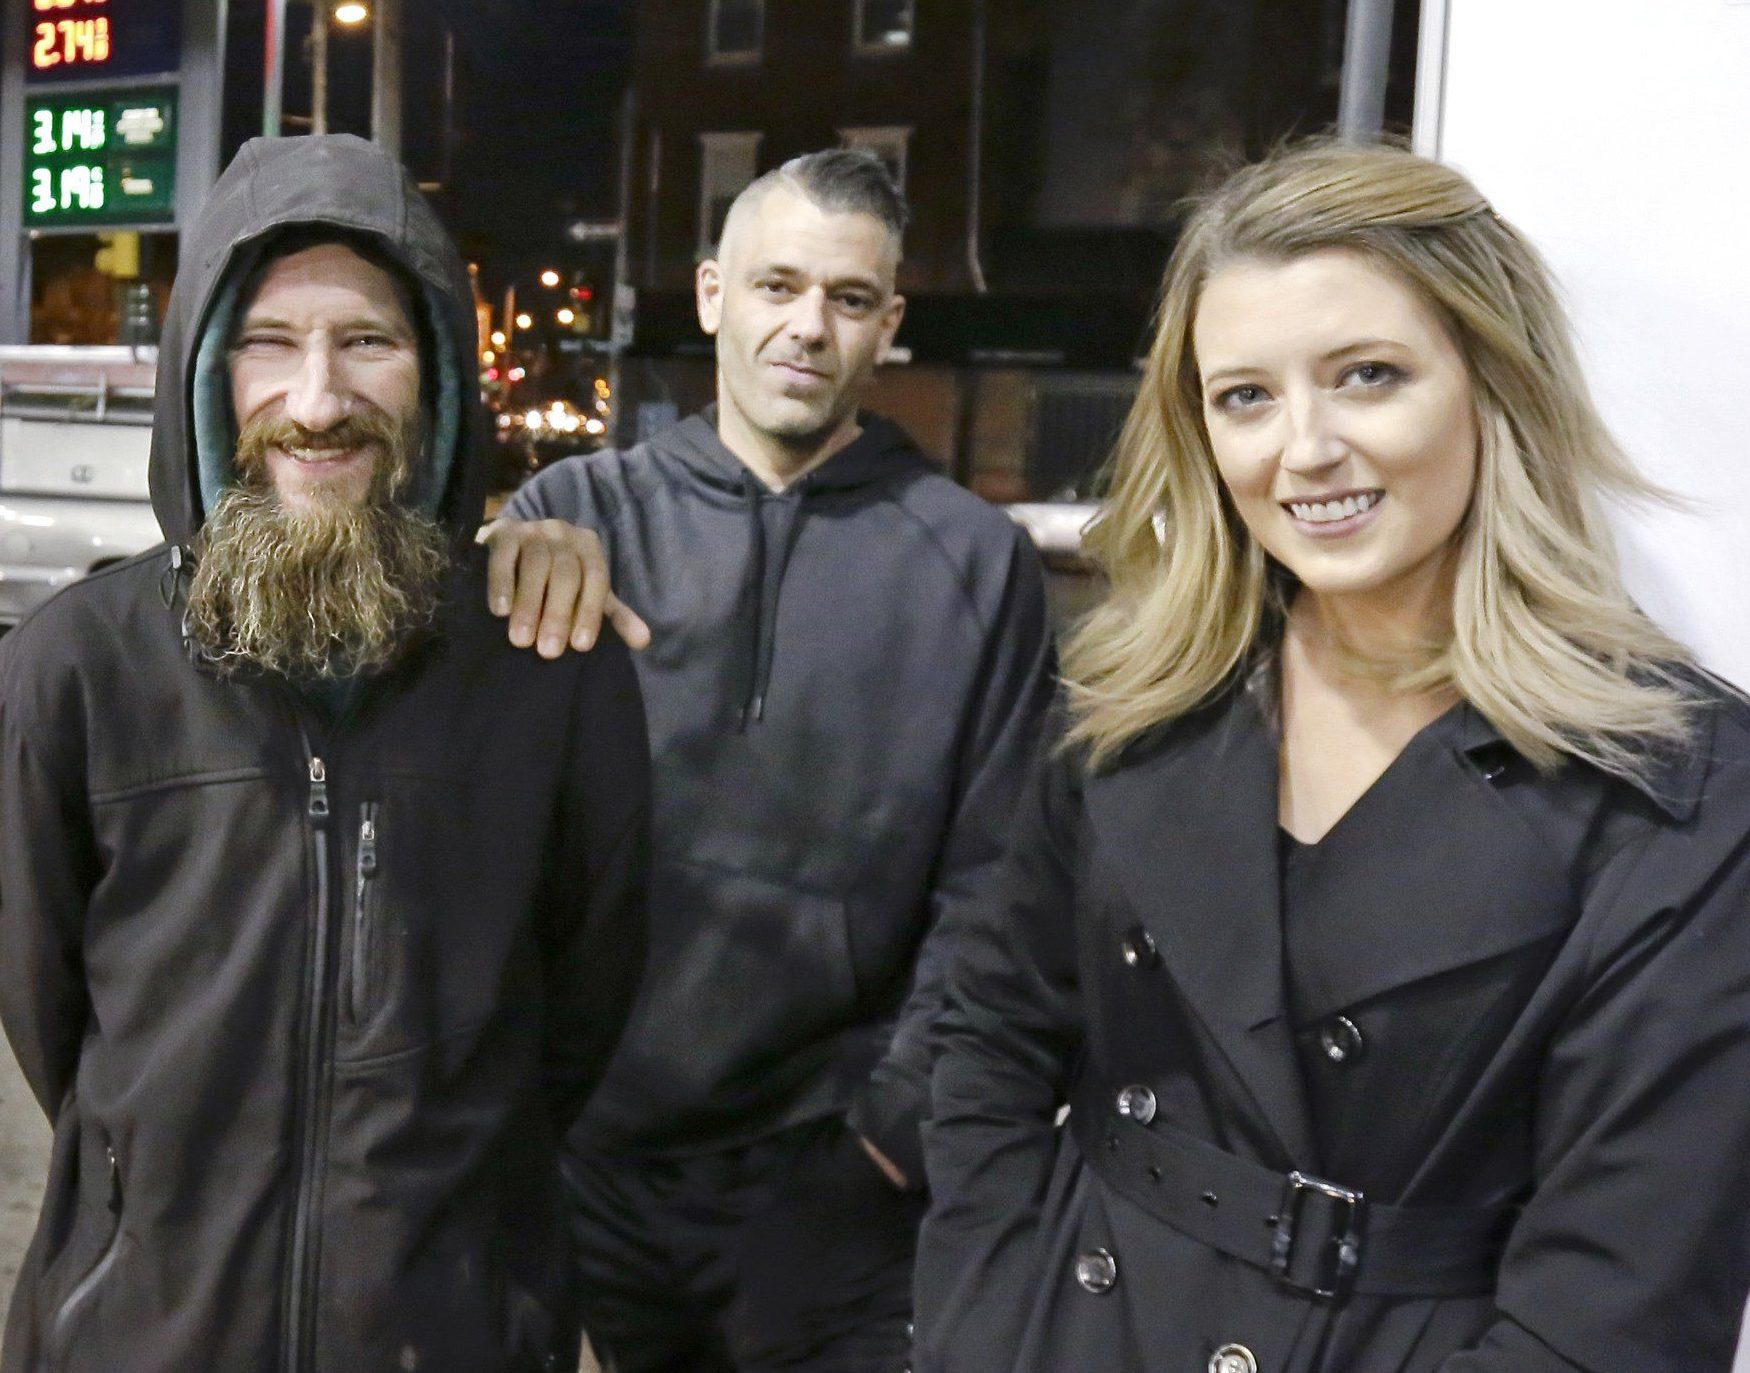 FILE ??? In this Nov. 17, 2017, file photo, Johnny Bobbitt Jr., left, Kate McClure, right, and McClure's boyfriend Mark D'Amico pose at a Citgo station in Philadelphia. Bobbitt, a homeless man whose selfless act of using his last $20 to fill the gas tank of a stranded motorist in Philadelphia drew worldwide attention, filed suit against D'Amico and McClure, the couple who led a $400,000 GoFundMe fundraising campaign to help him, contending the couple mismanaged donations and committed fraud by taking contributed money for themselves. A hearing is scheduled Thursday, Aug. 30, 2018. (Elizabeth Robertson/The Philadelphia Inquirer via AP)